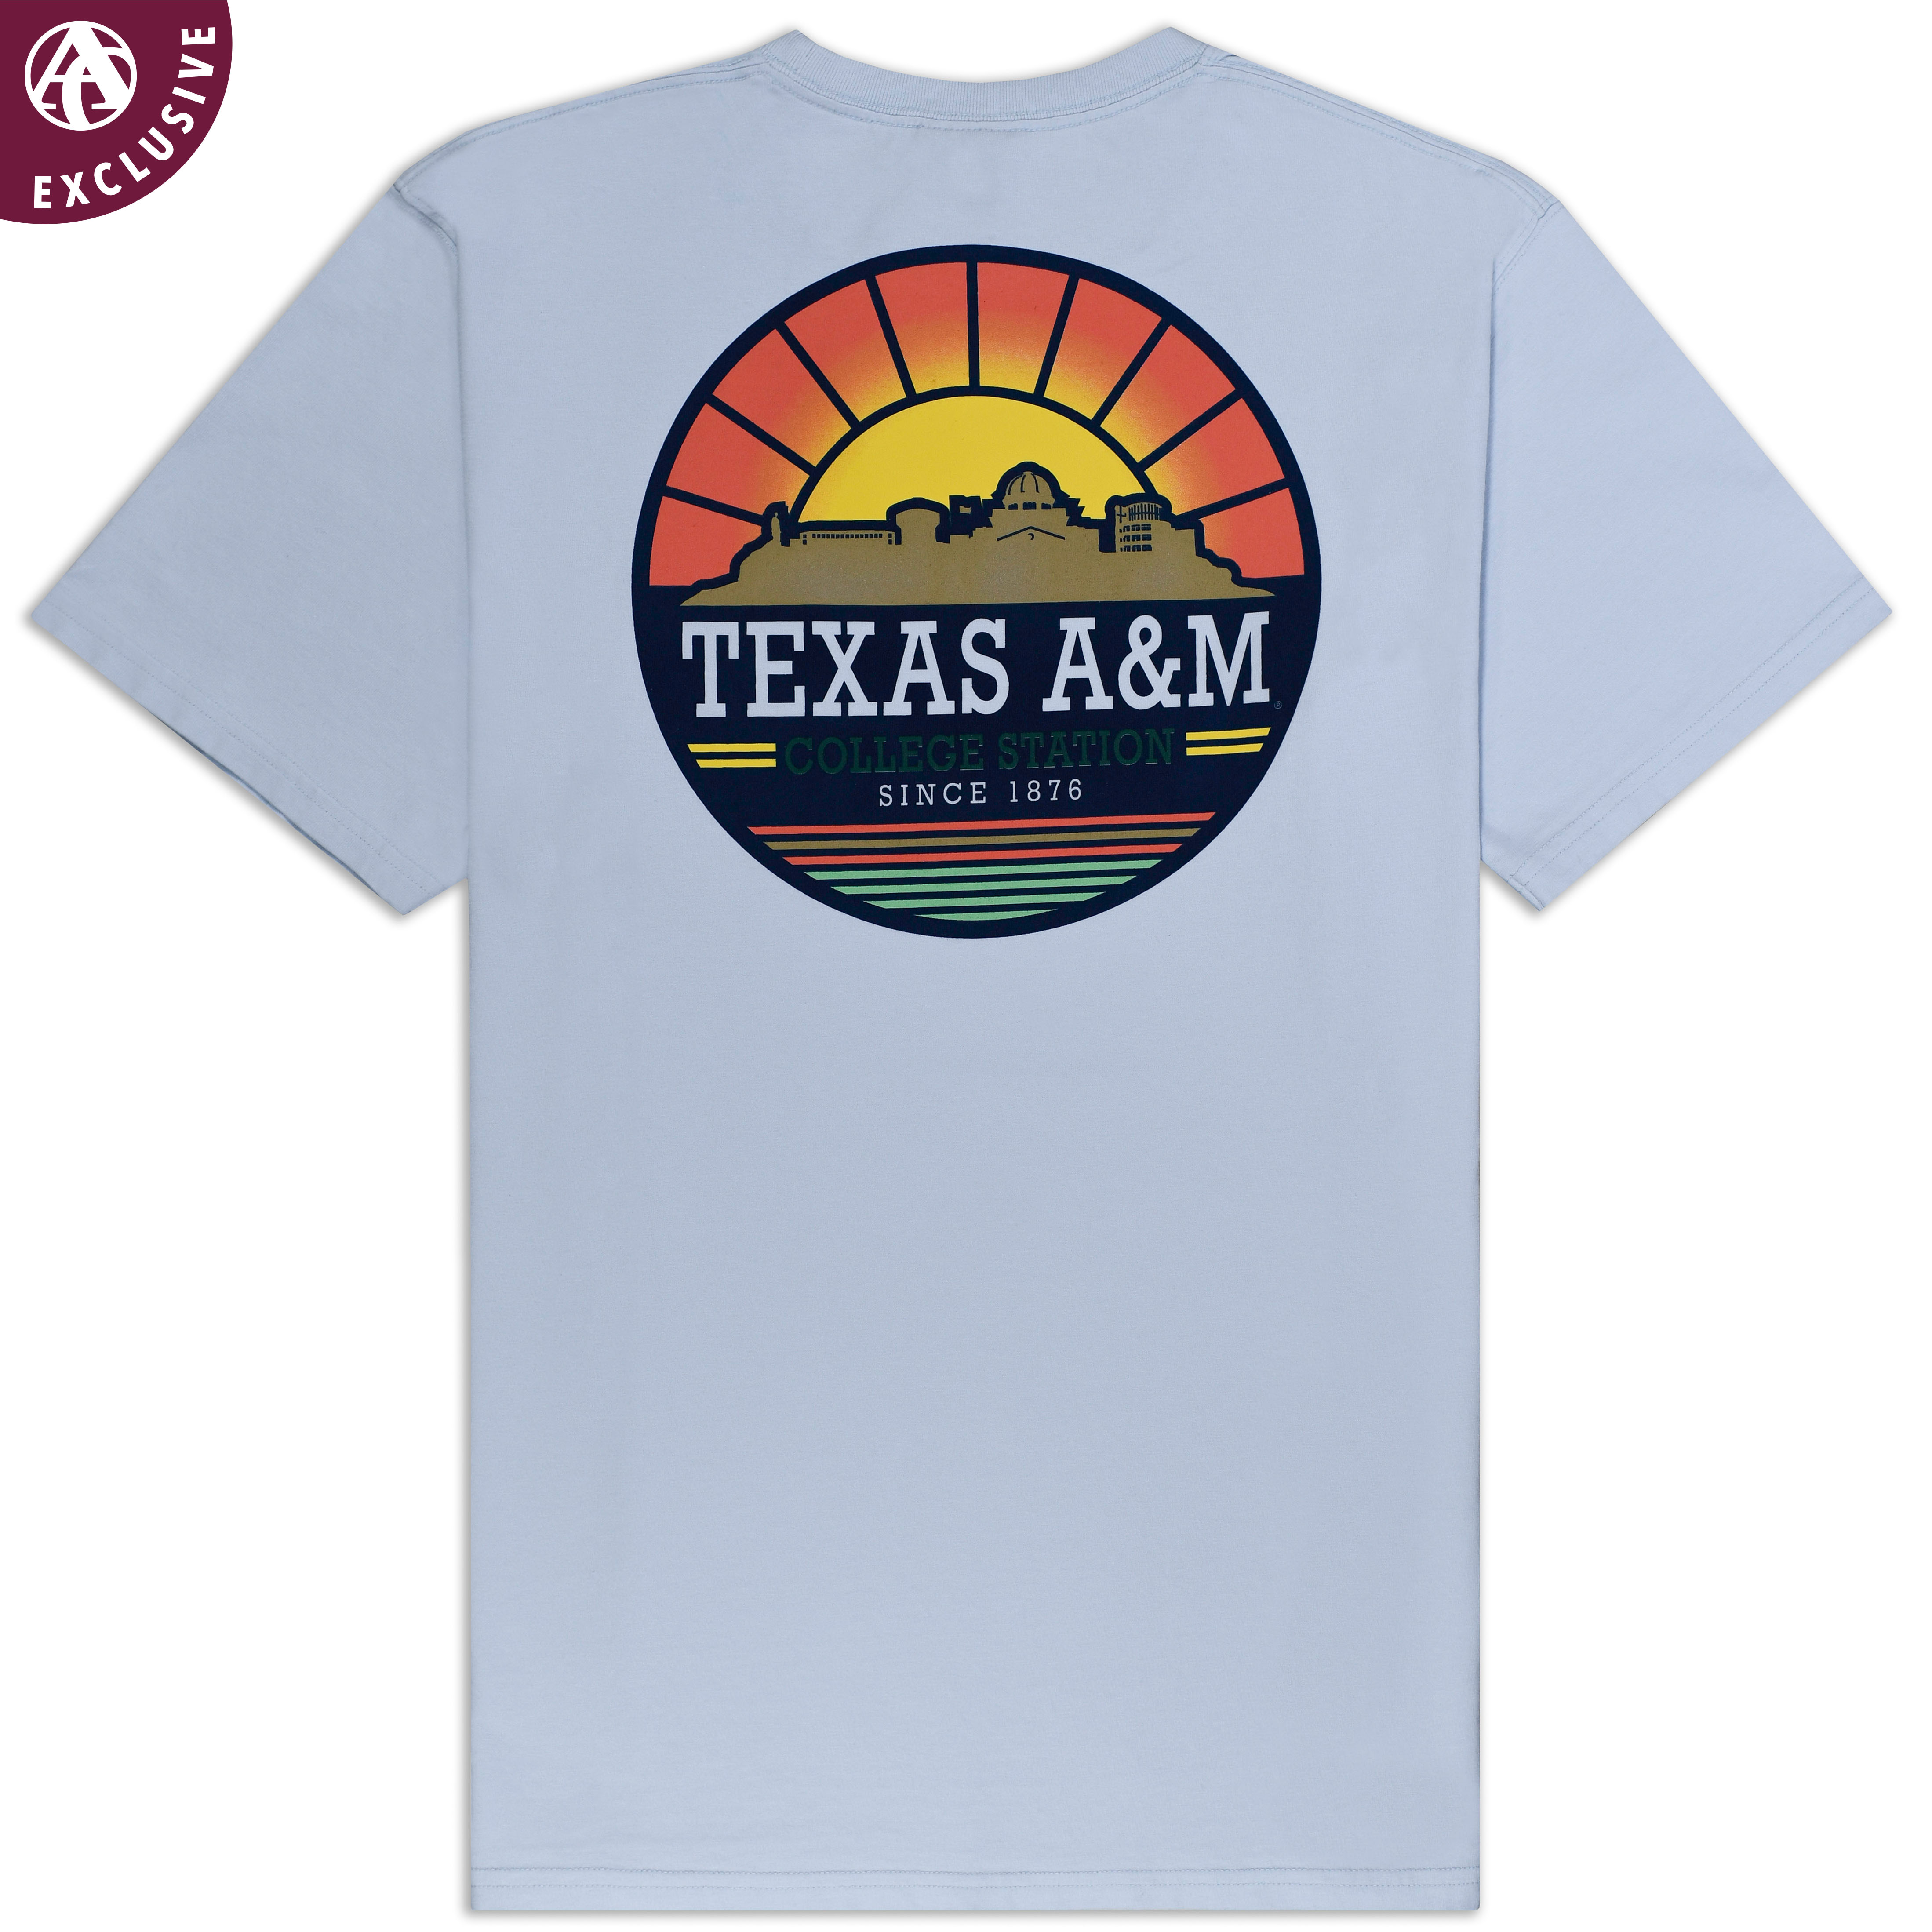 8c84edeab A great way to wear your love for your university and her beautiful  sunrises, this comfy tee features a shot of the campus skyline at dawn, in a  circular ...